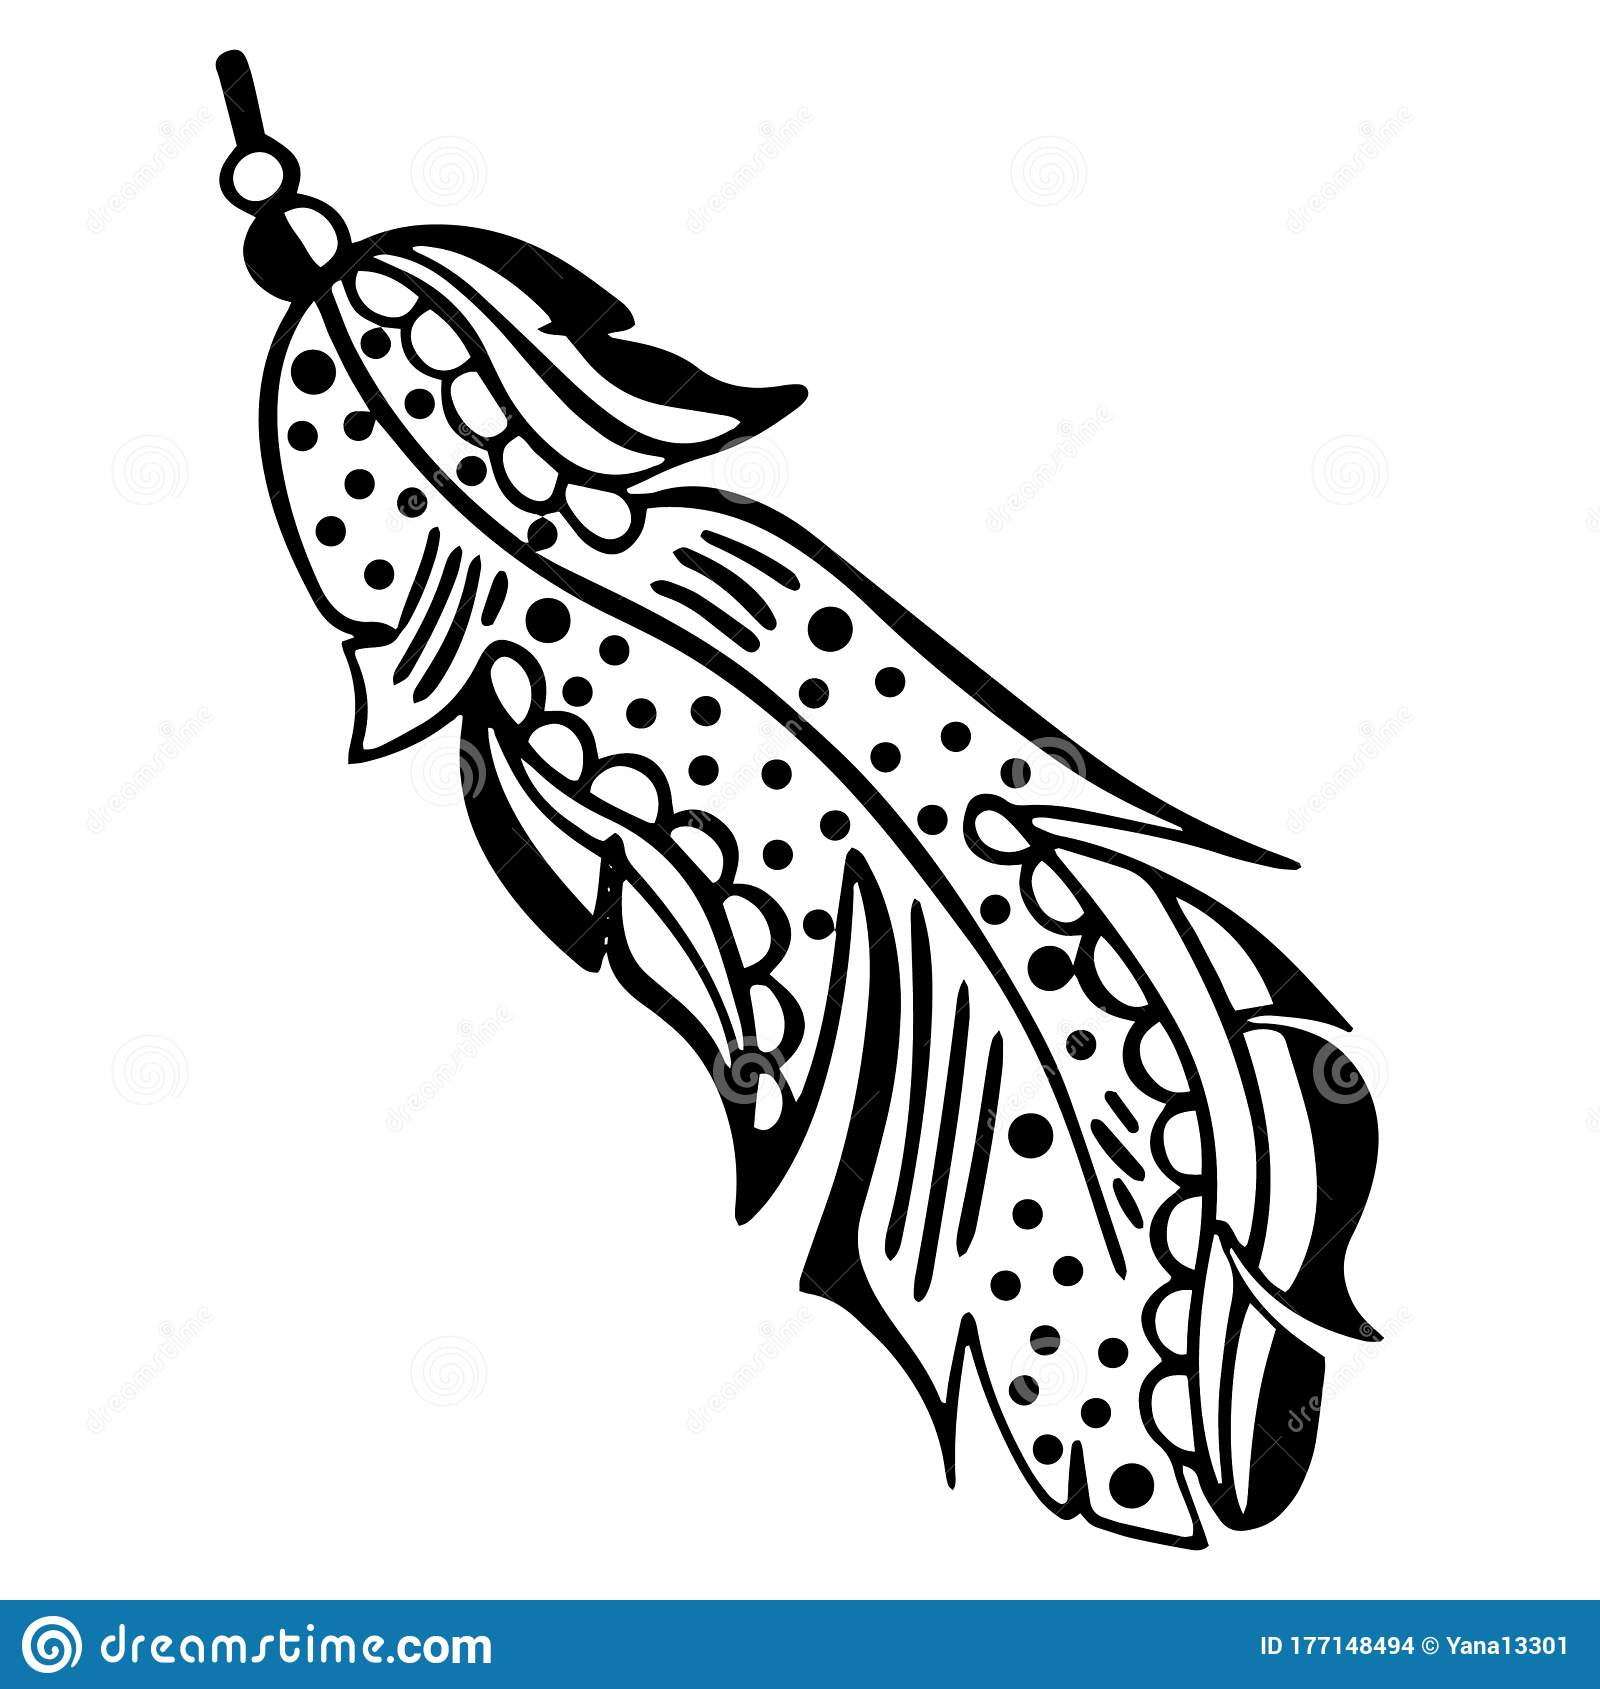 Feather Bookmarks Coloring Page Stock Illustration - Illustration ... | 1689x1600